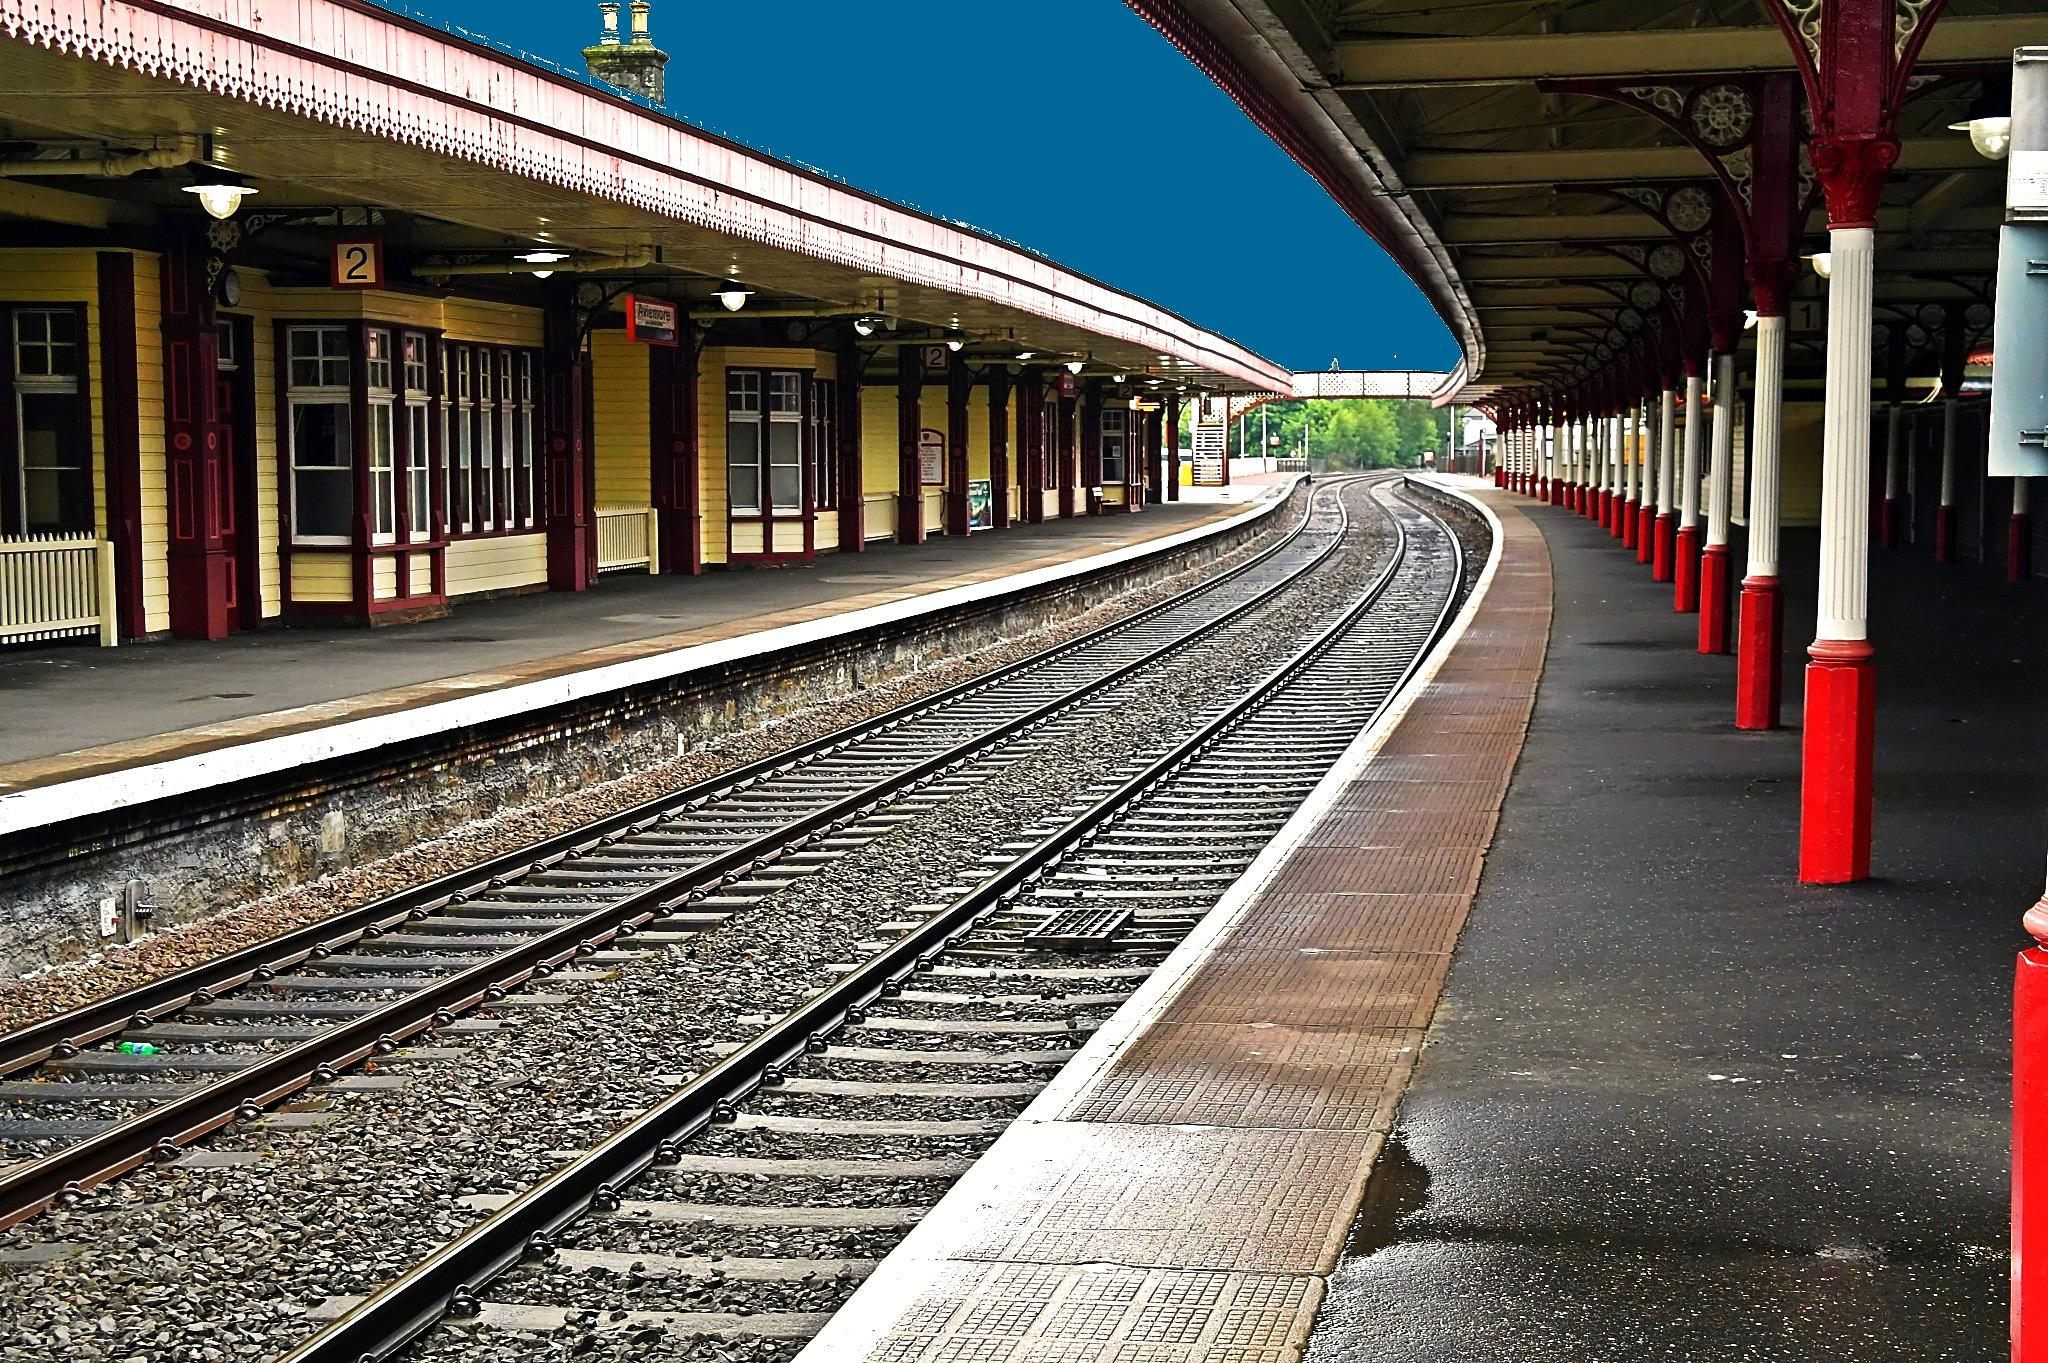 Aviemore train station Scotland by georgeporteous